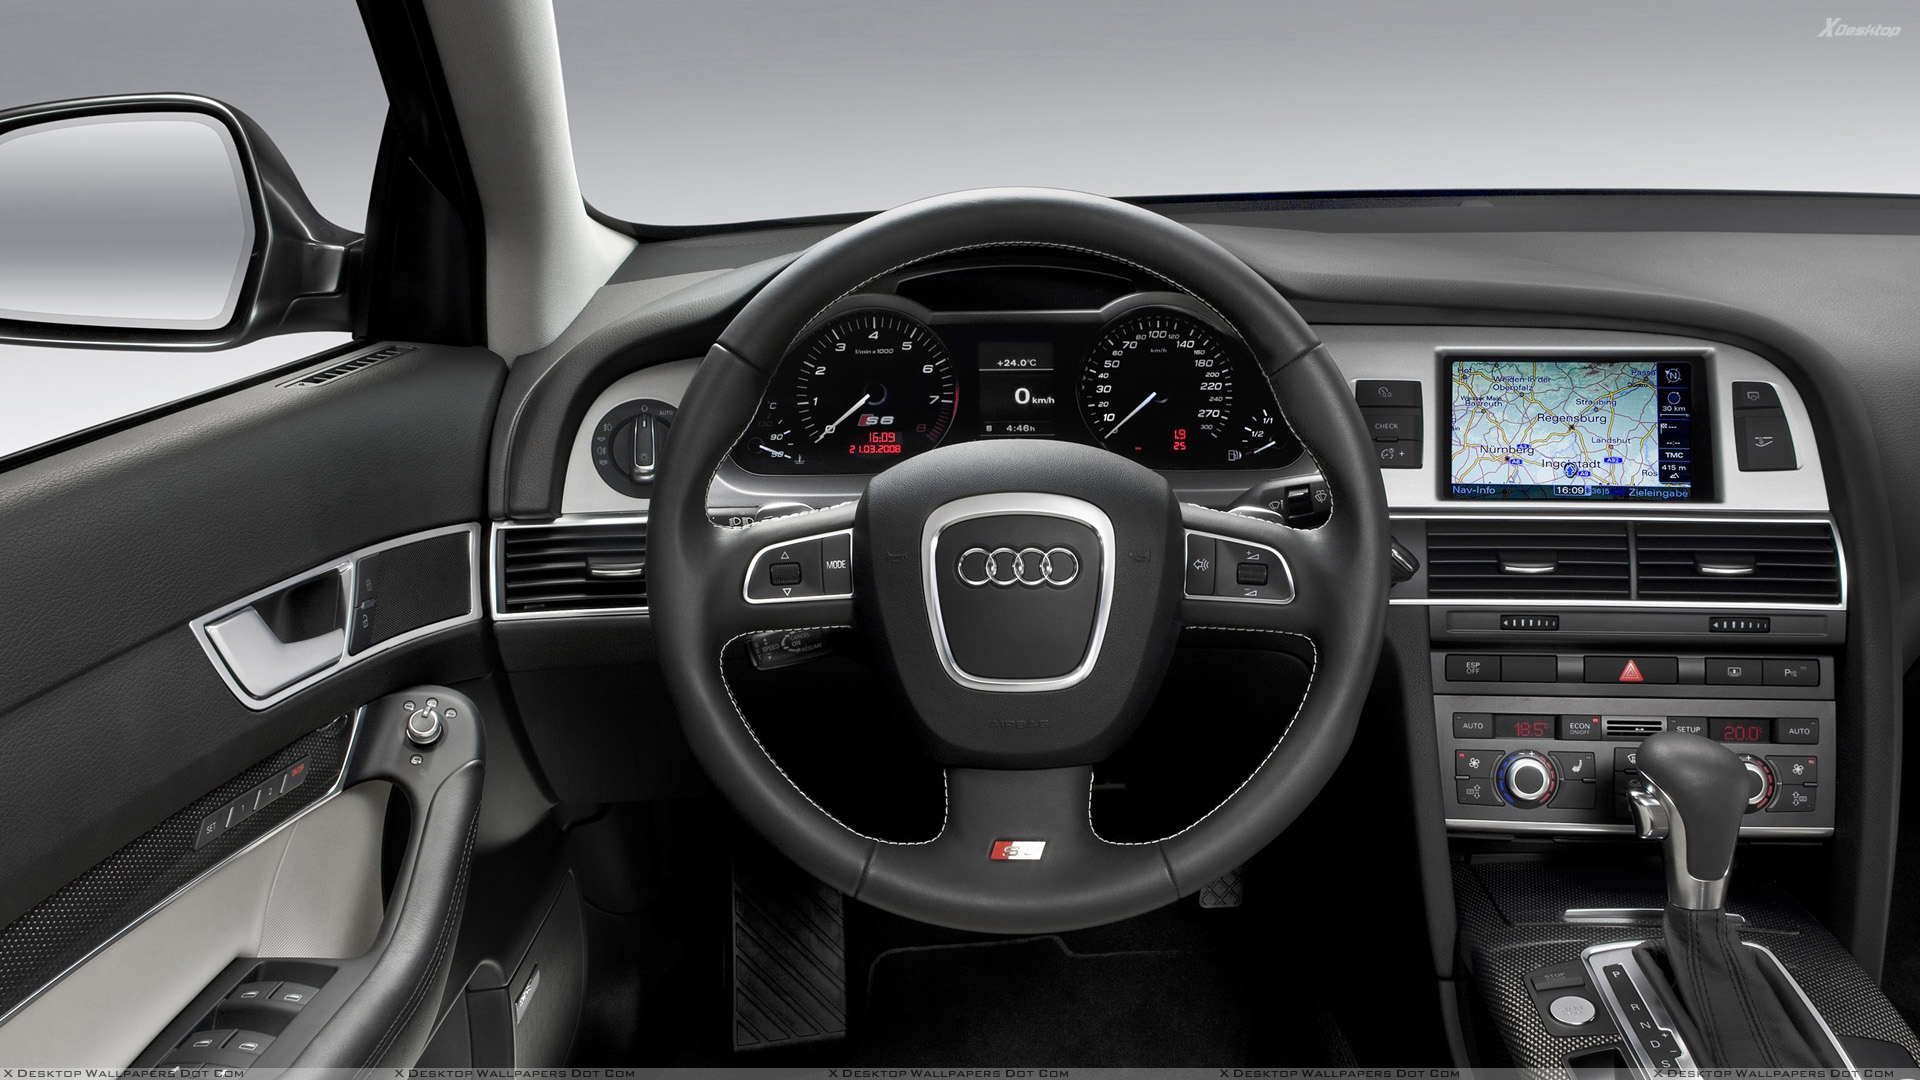 580ps Audi Rs 6 Car Dashboard Wallpaper